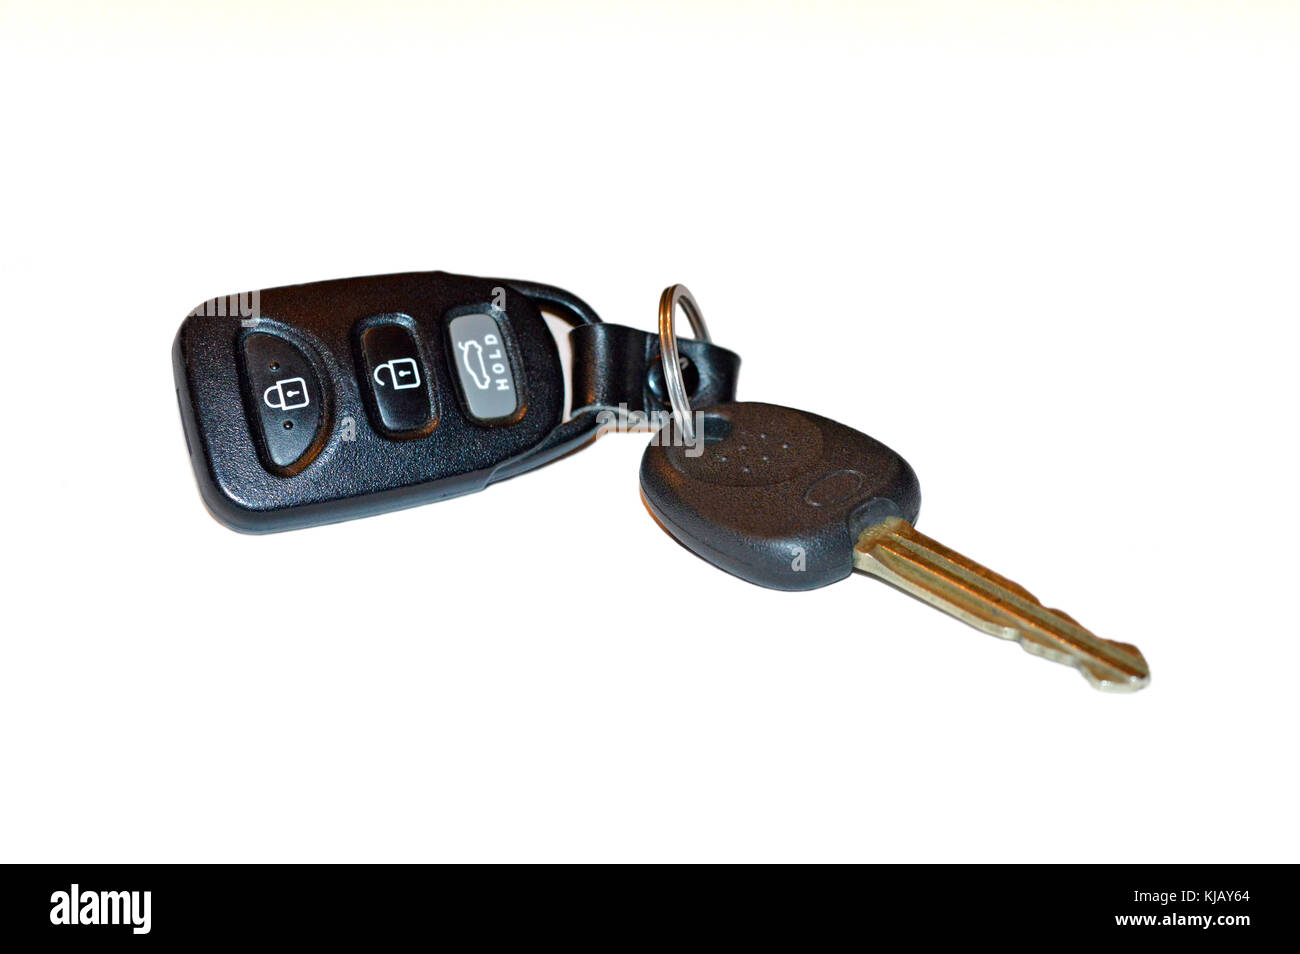 Start your engines, key and key FOB for keyless car entry - Stock Image